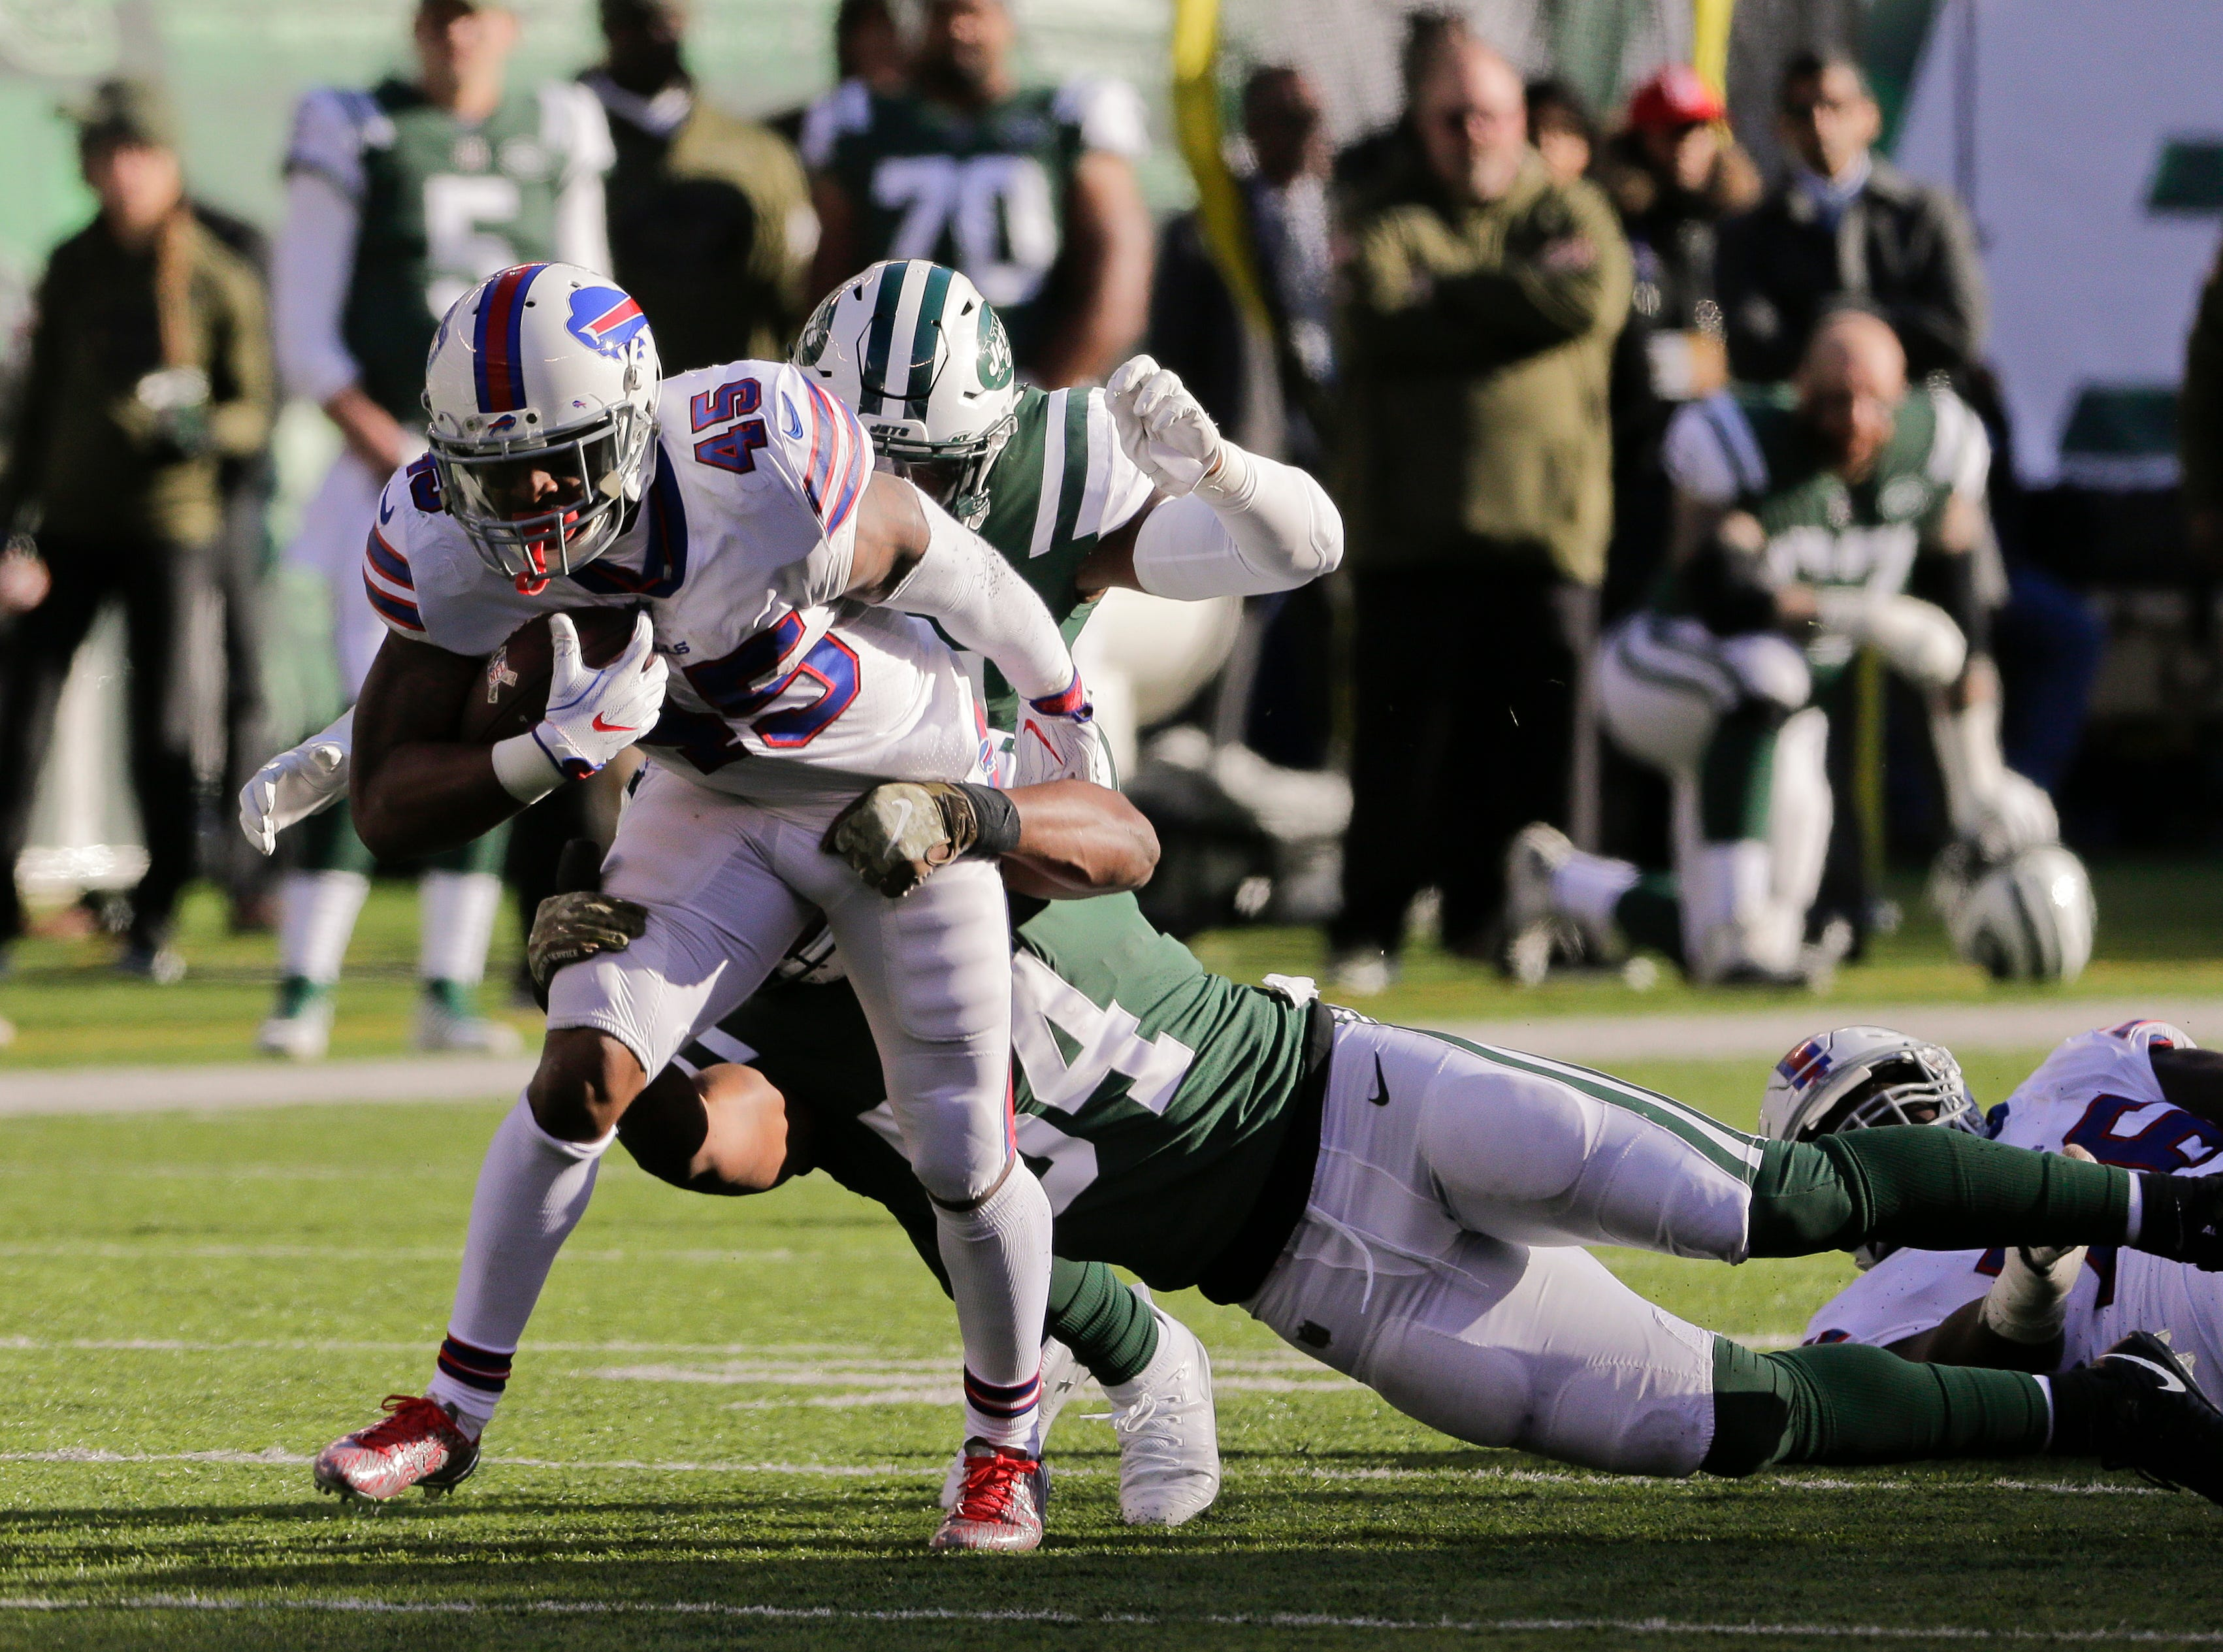 Buffalo Bills running back Marcus Murphy (45) is tackled by New York Jets inside linebacker Avery Williamson (54) during the second quarter of an NFL football game, Sunday, Nov. 11, 2018, in East Rutherford, N.J. (AP Photo/Seth Wenig)